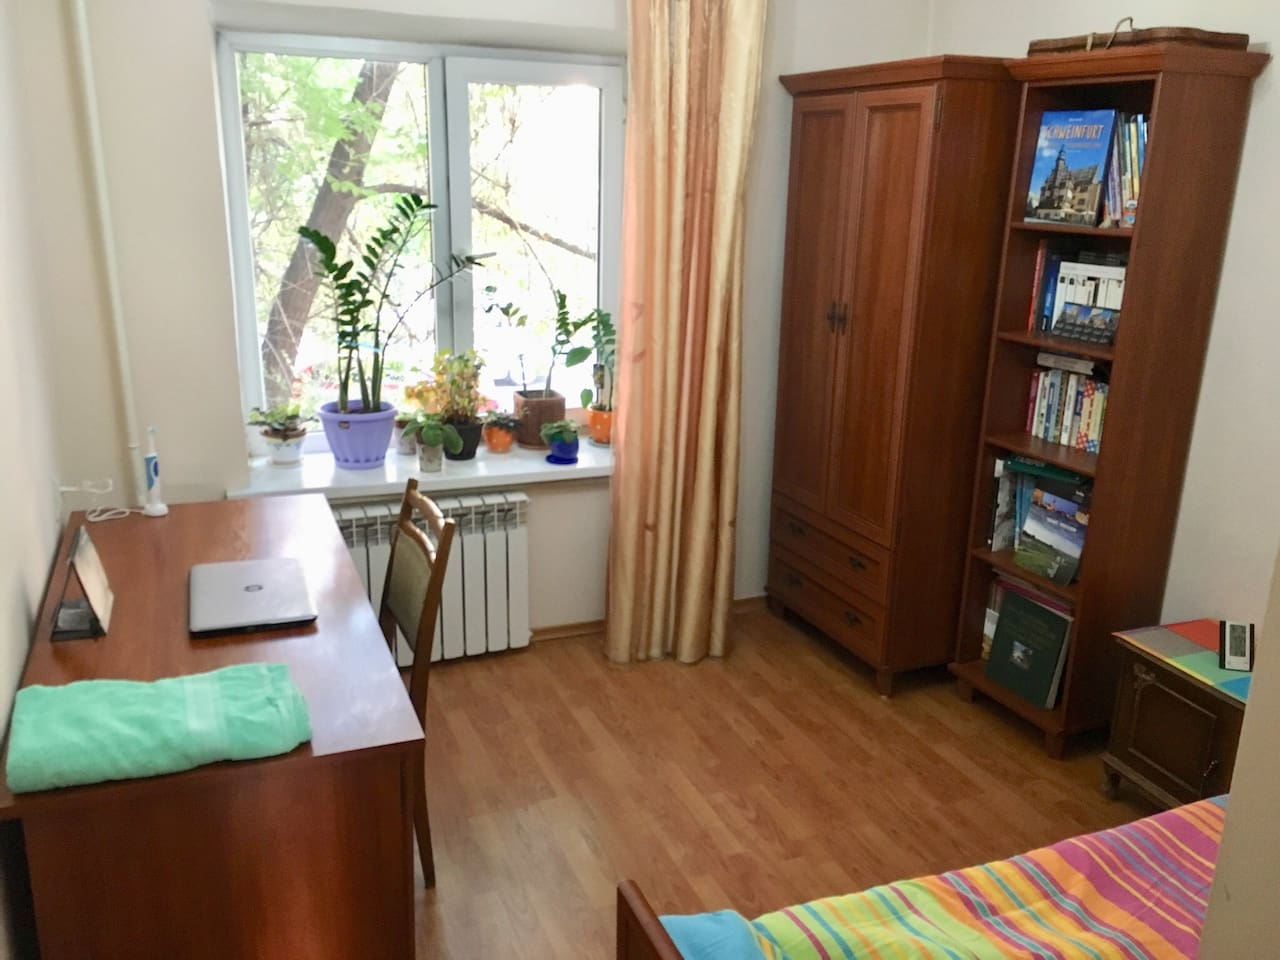 General view of the room